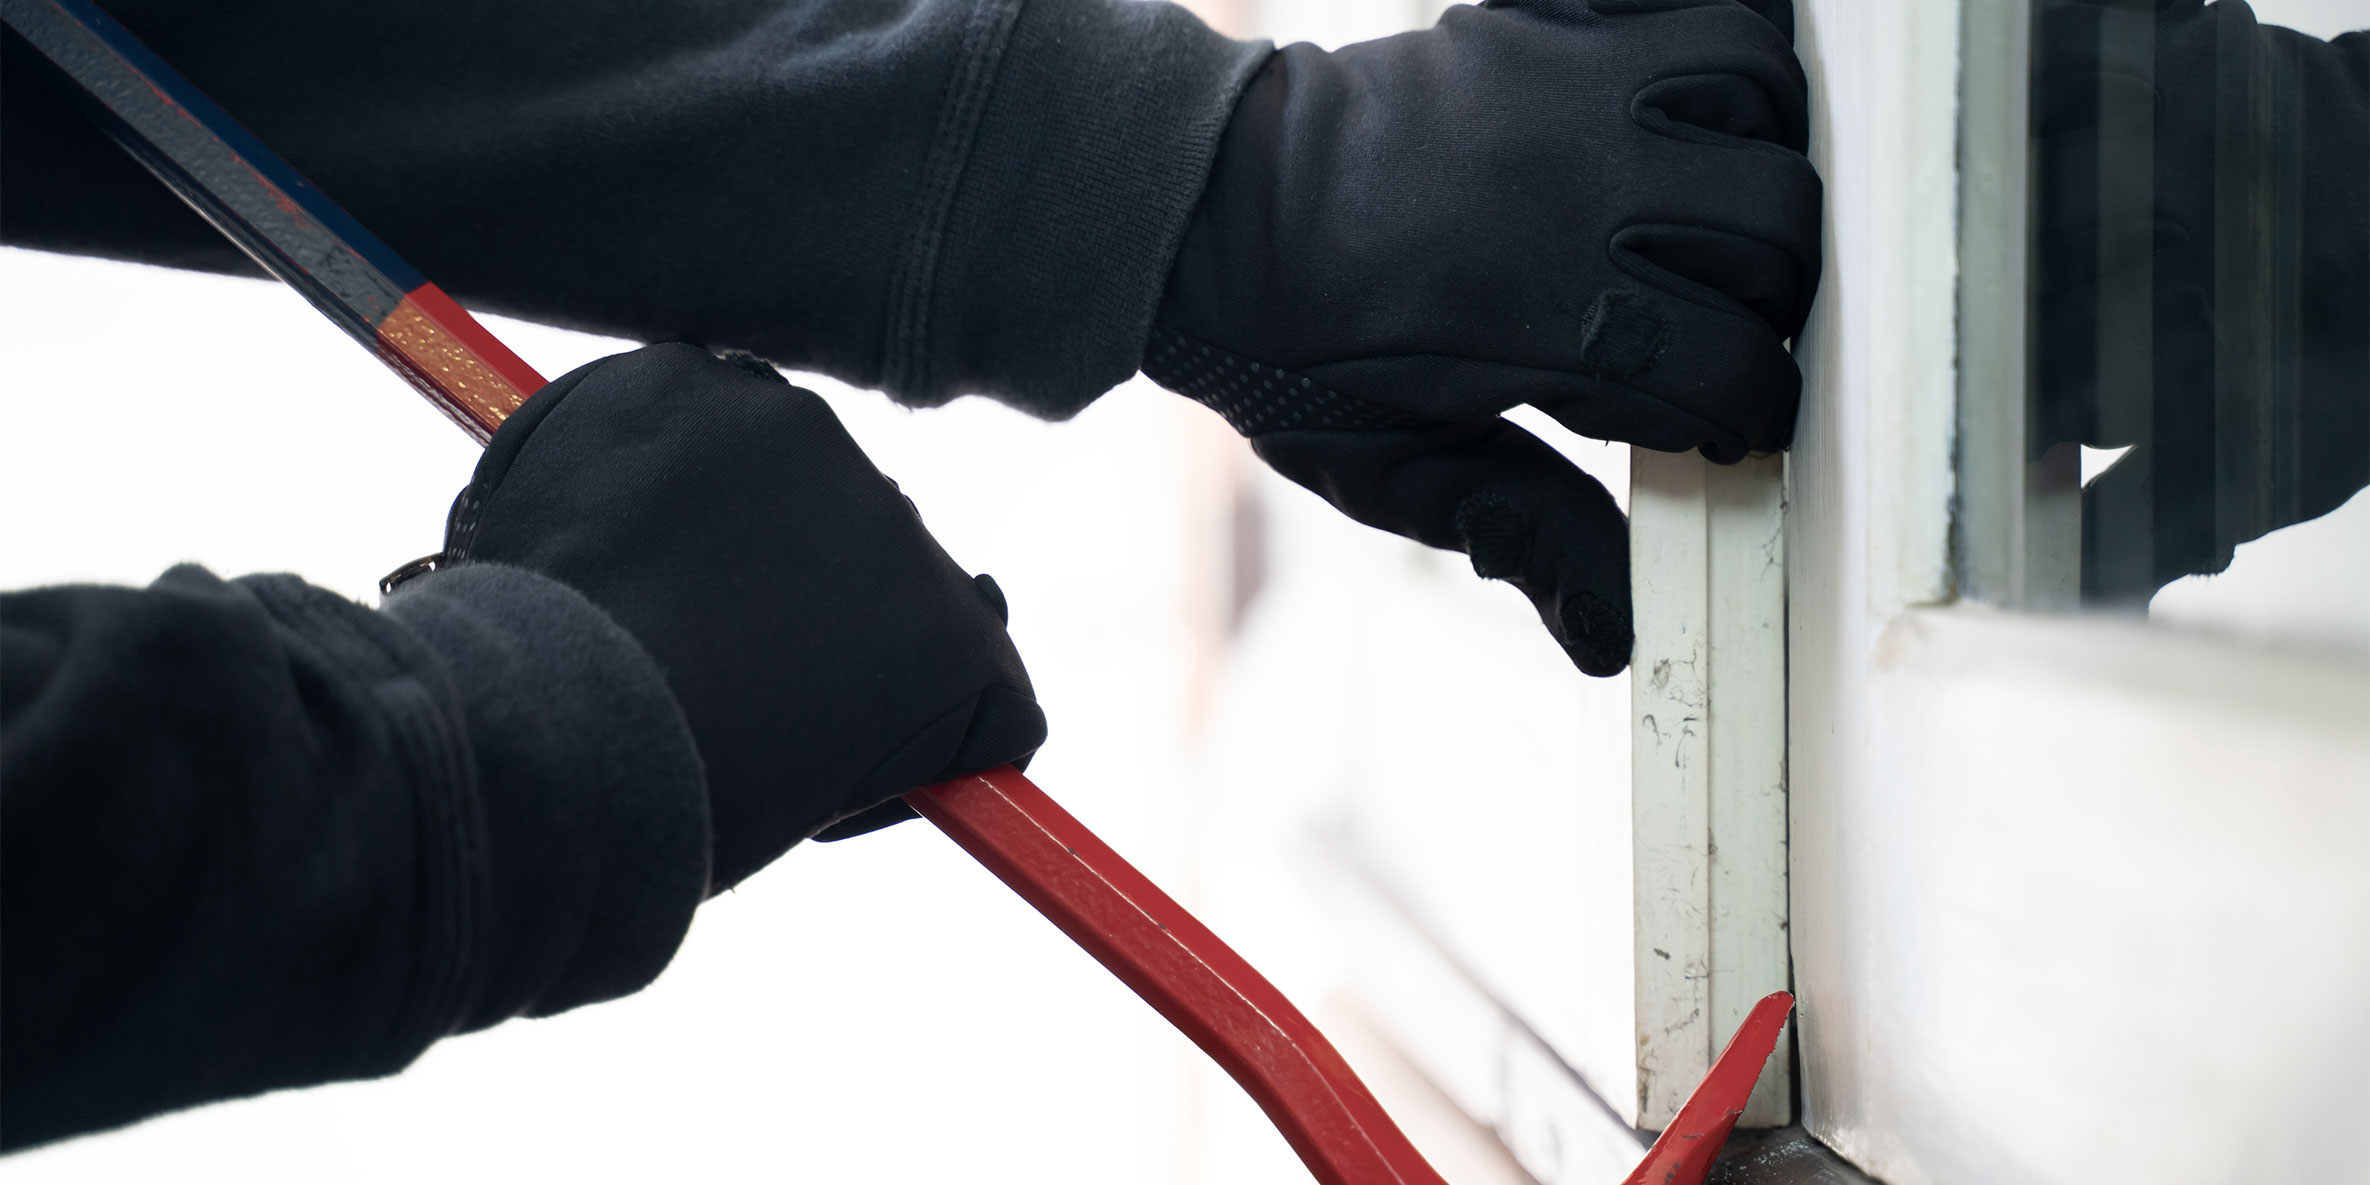 Burglar Prevention and Home Security: Top-Targeted Items